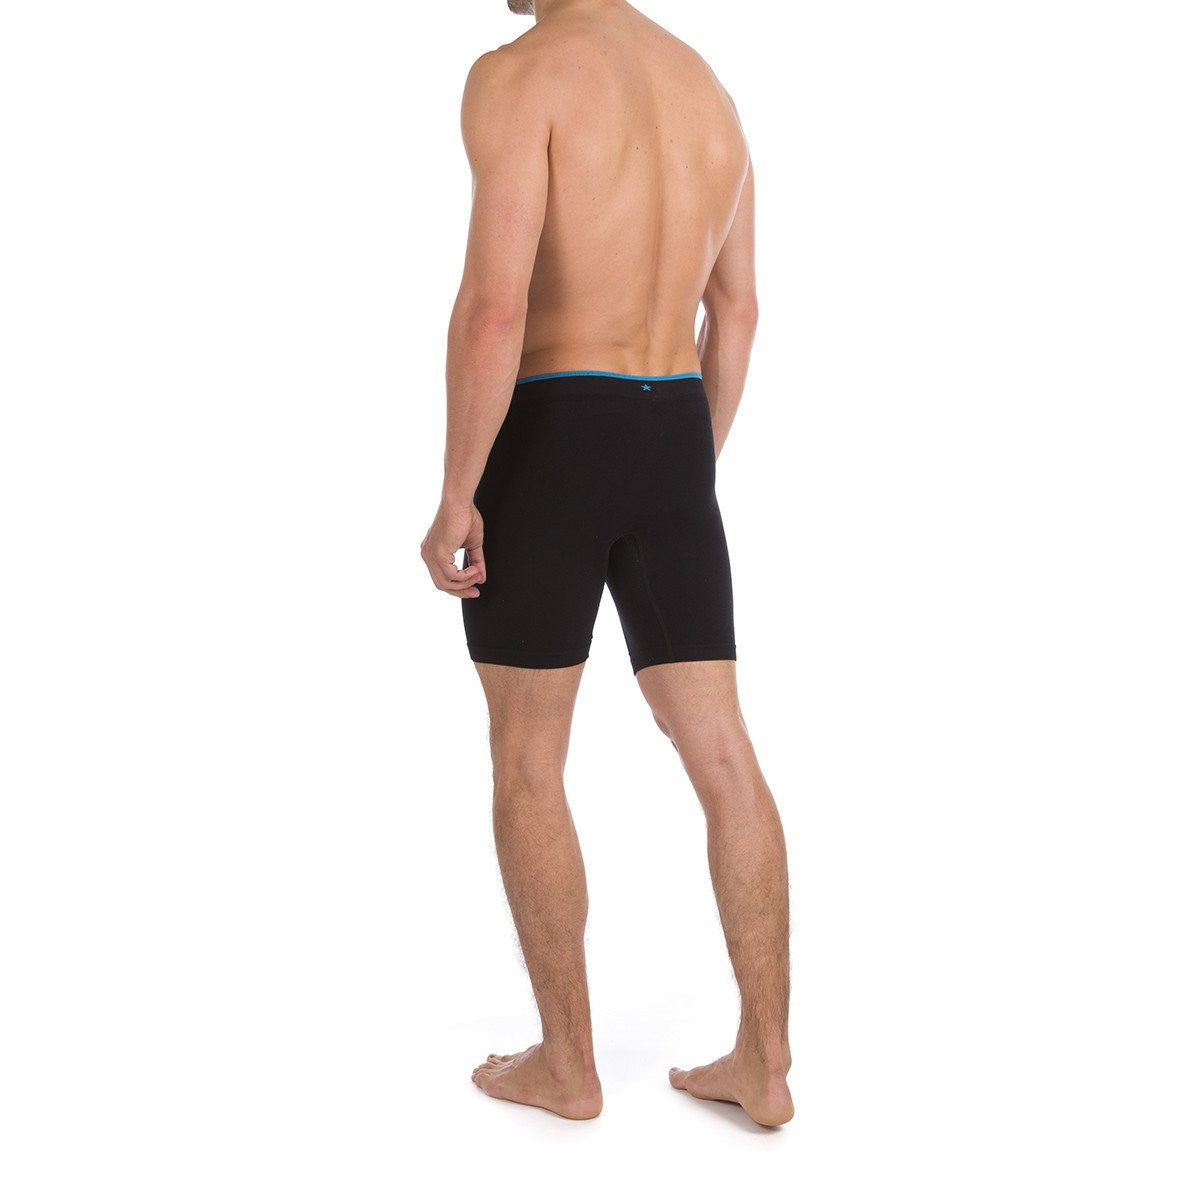 Men's Runderwear Long Boxer - Black